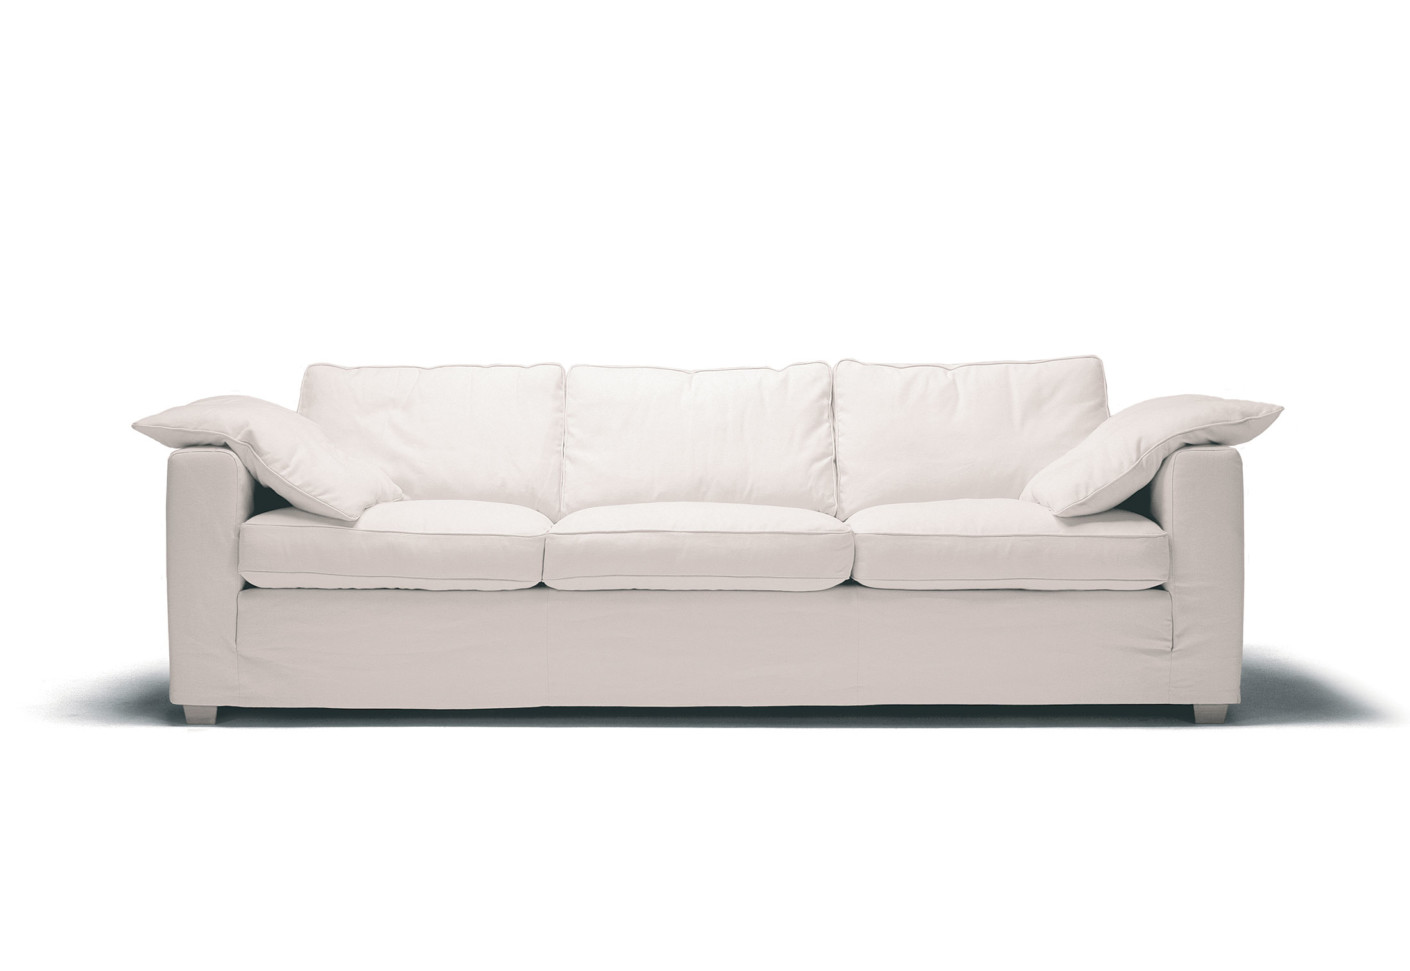 ez living cork sofas. ez living cork sofas charlotte seater furniture with limerick